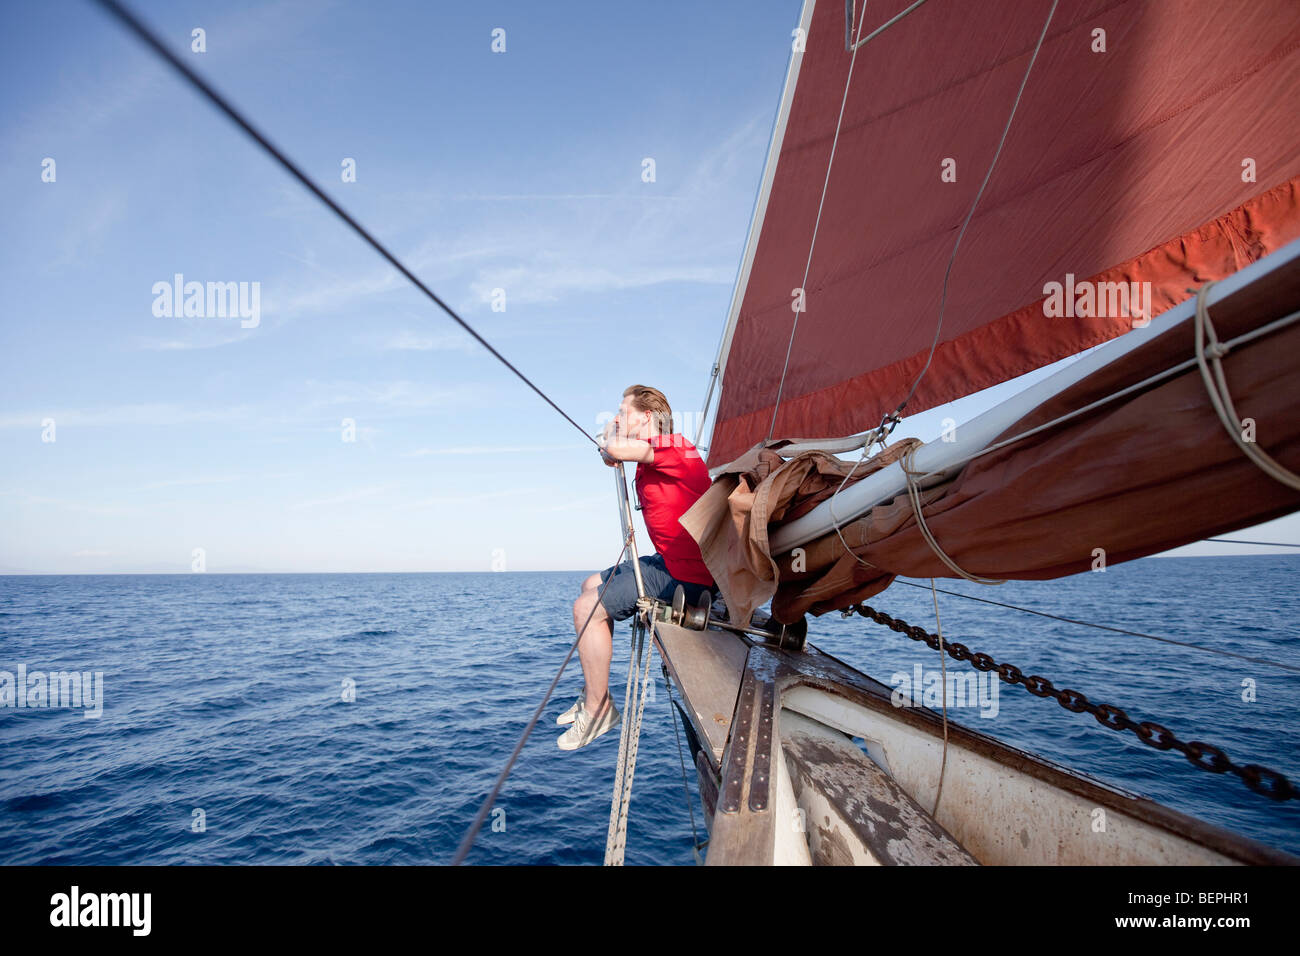 Man sitting at the bow of a ship - Stock Image